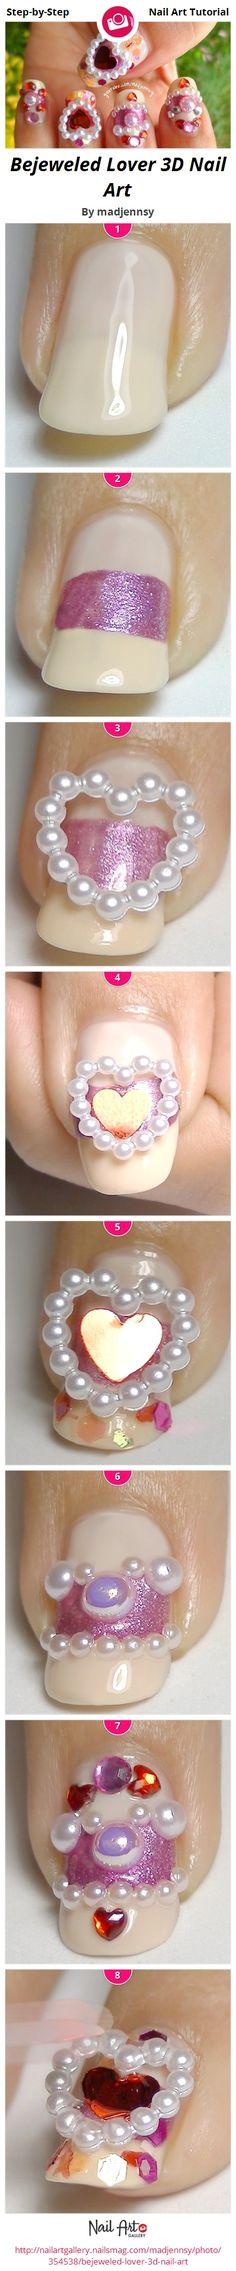 Bejeweled Lover 3D Nail Art by madjennsy from Nail Art Gallery